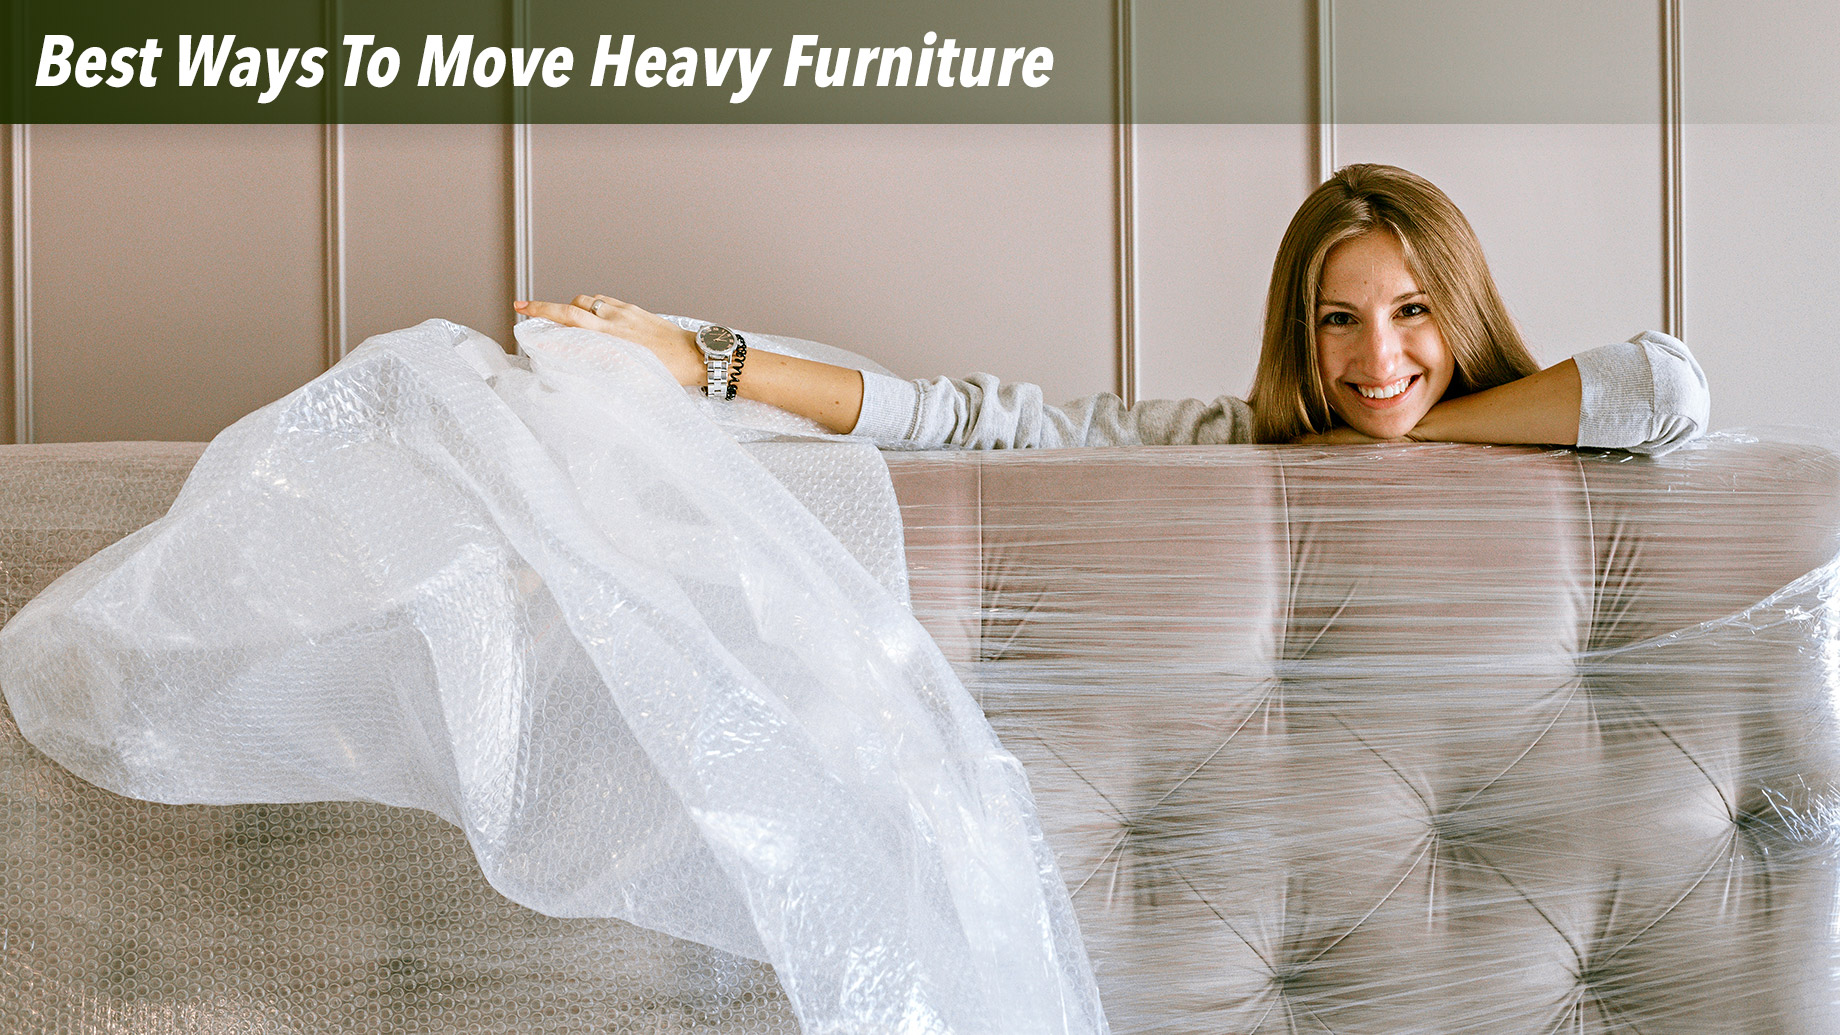 Best Ways To Move Heavy Furniture